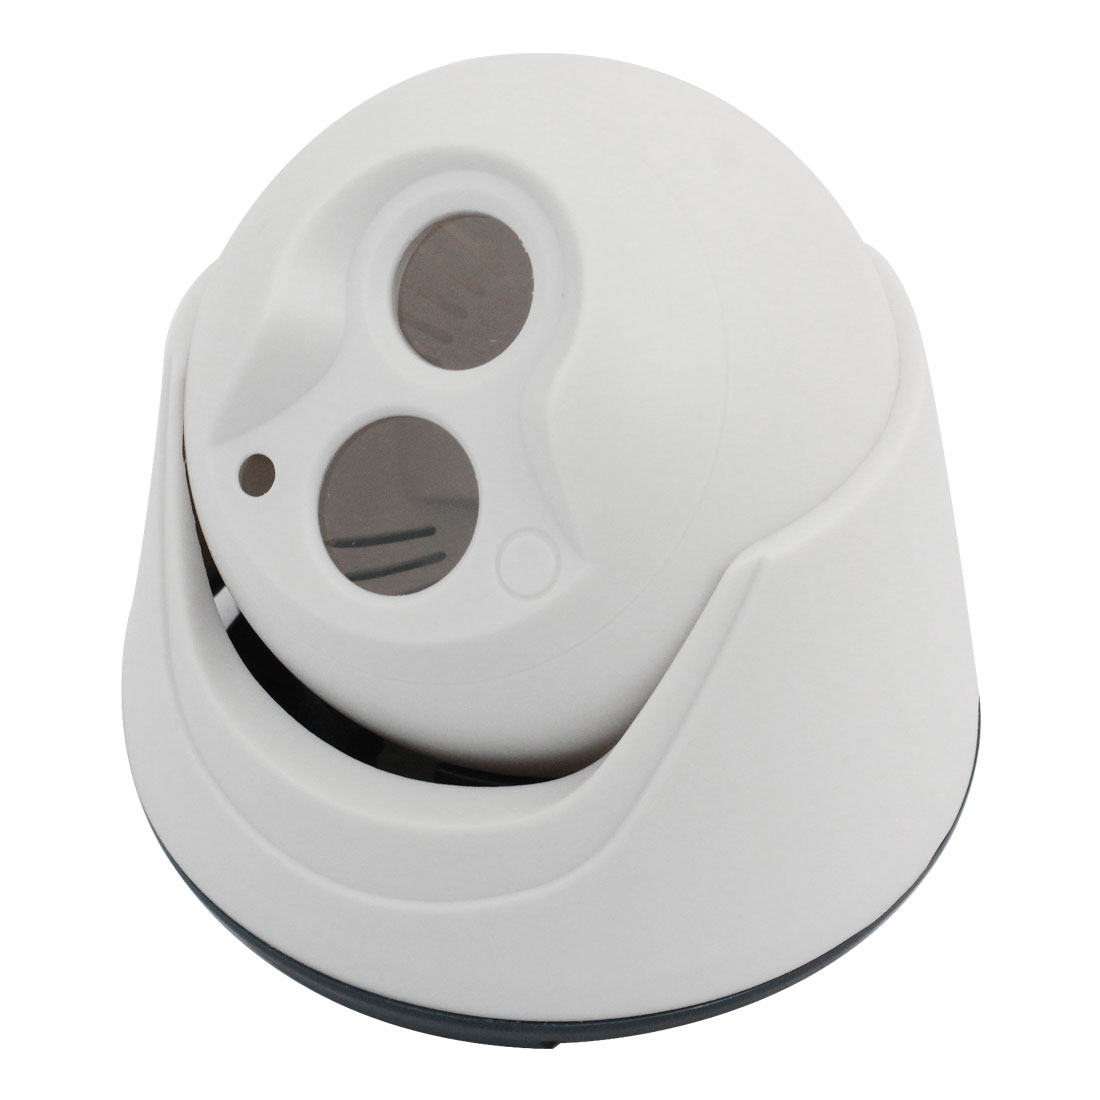 "White Plastic Security CCD Dome Camera Housing Case 3.9"" Dia"